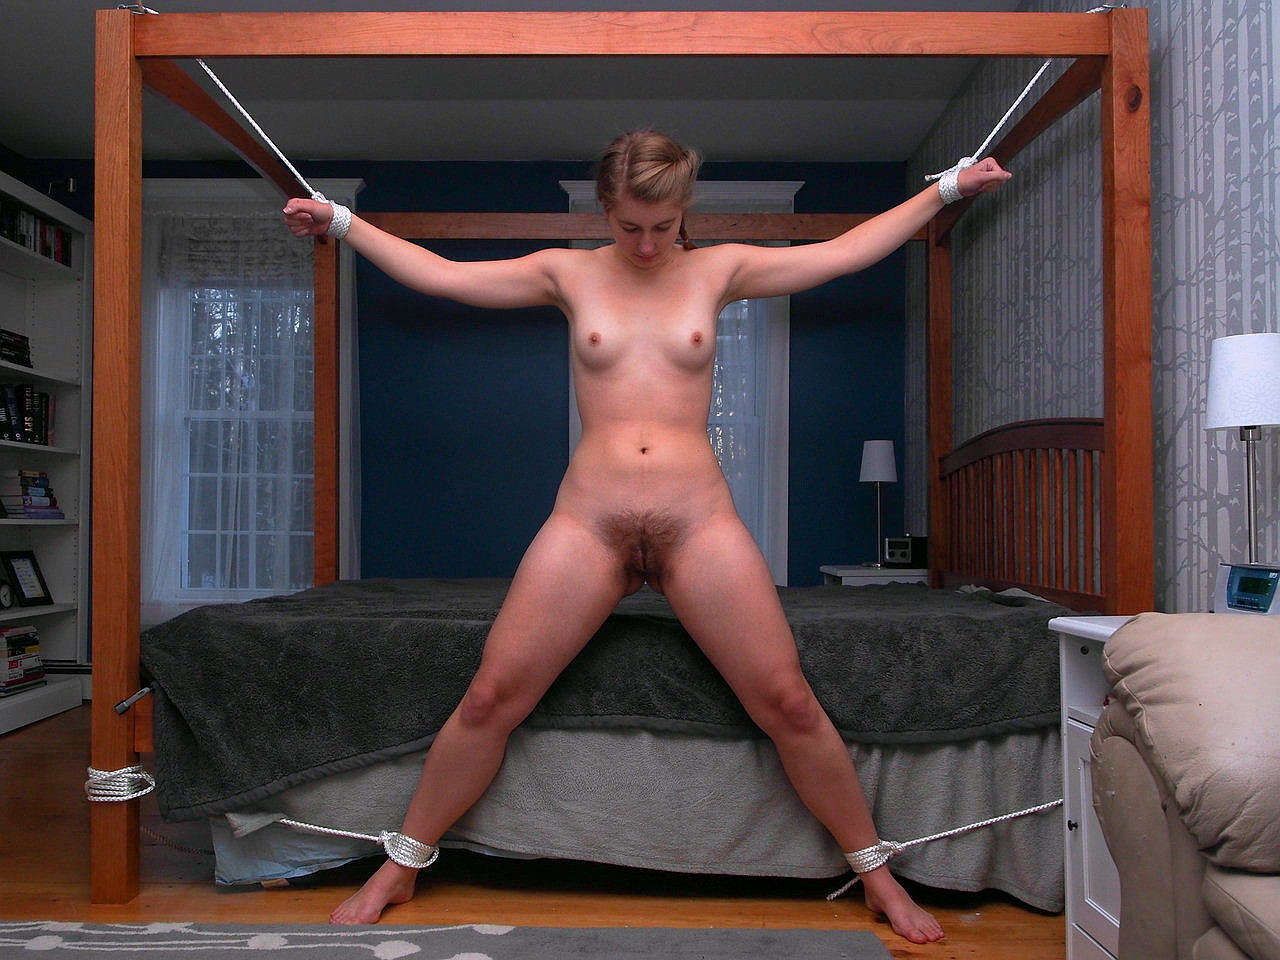 Saggy Fuck Mature Galeries, Hot Milf Saggy Porn For Free And Old Woman Saggy Sex Pics